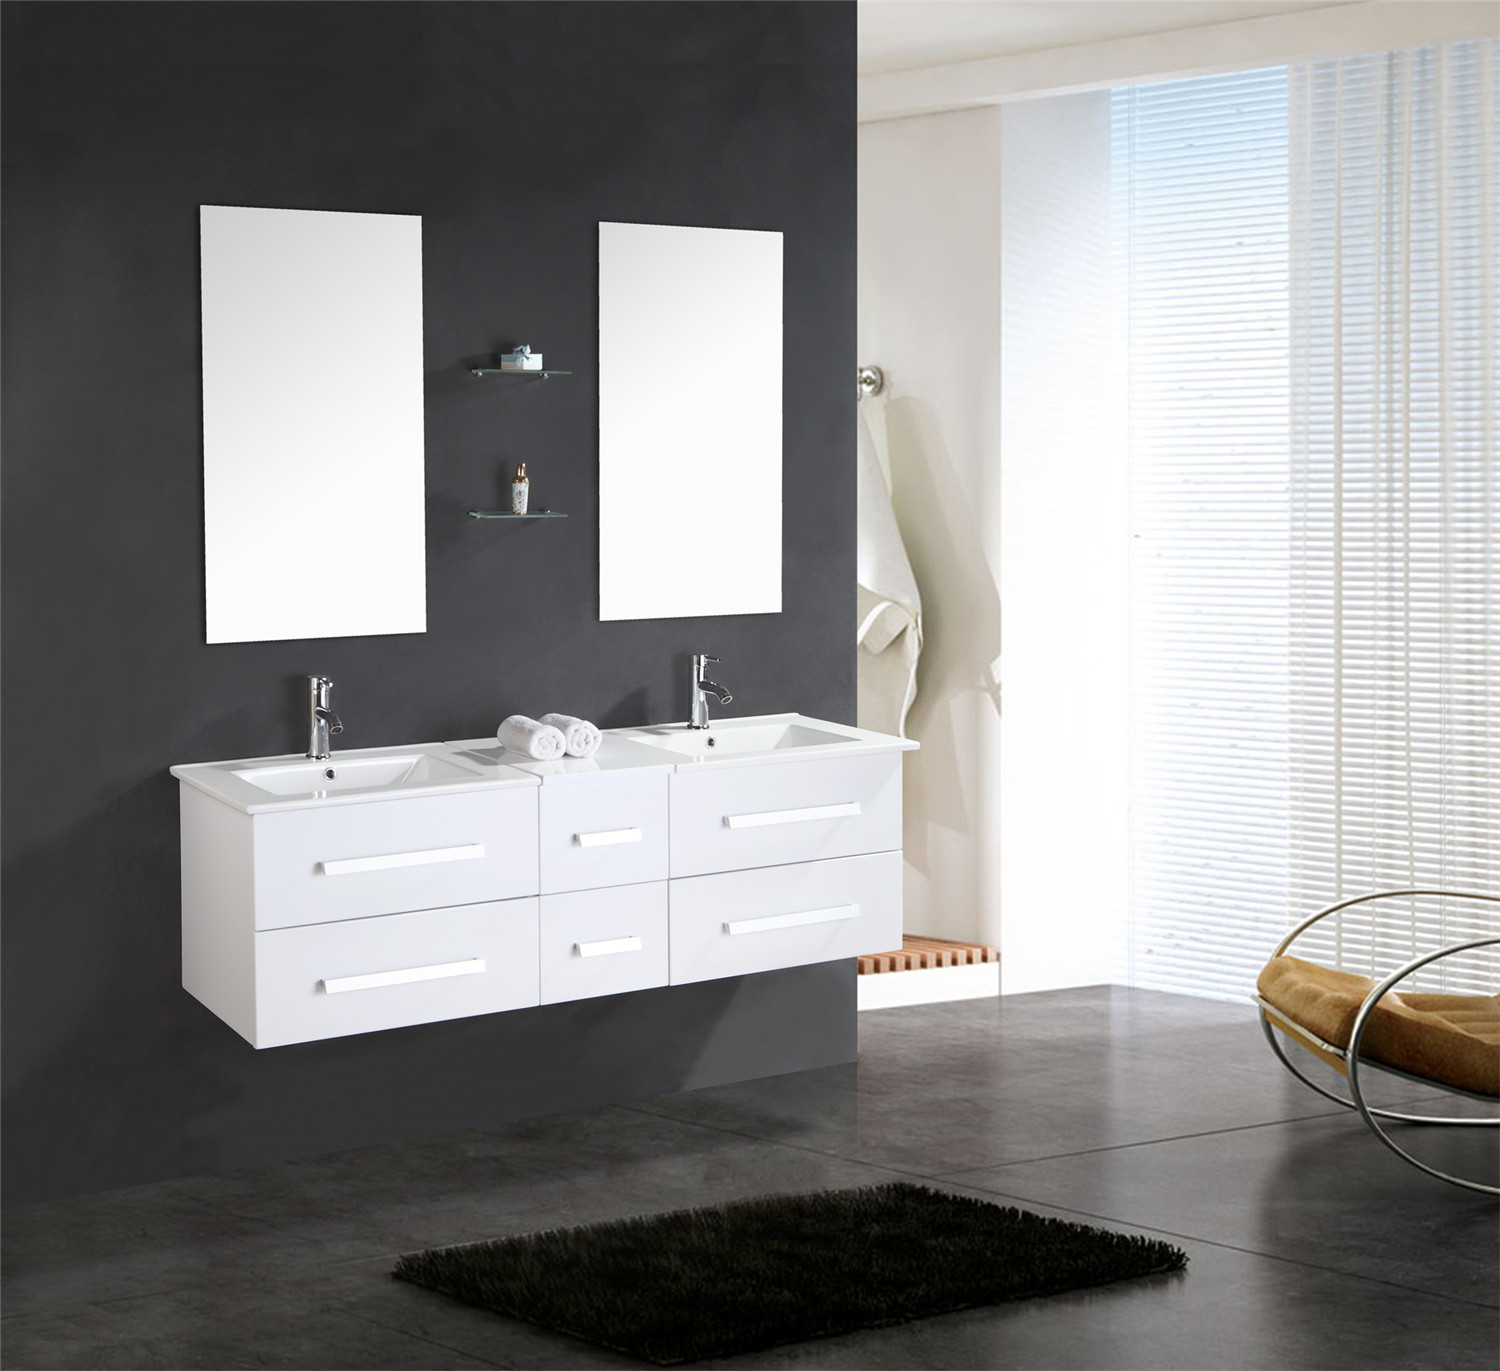 white rome meuble de salle de bain 150 cm lavabo inclus simbashopping france. Black Bedroom Furniture Sets. Home Design Ideas